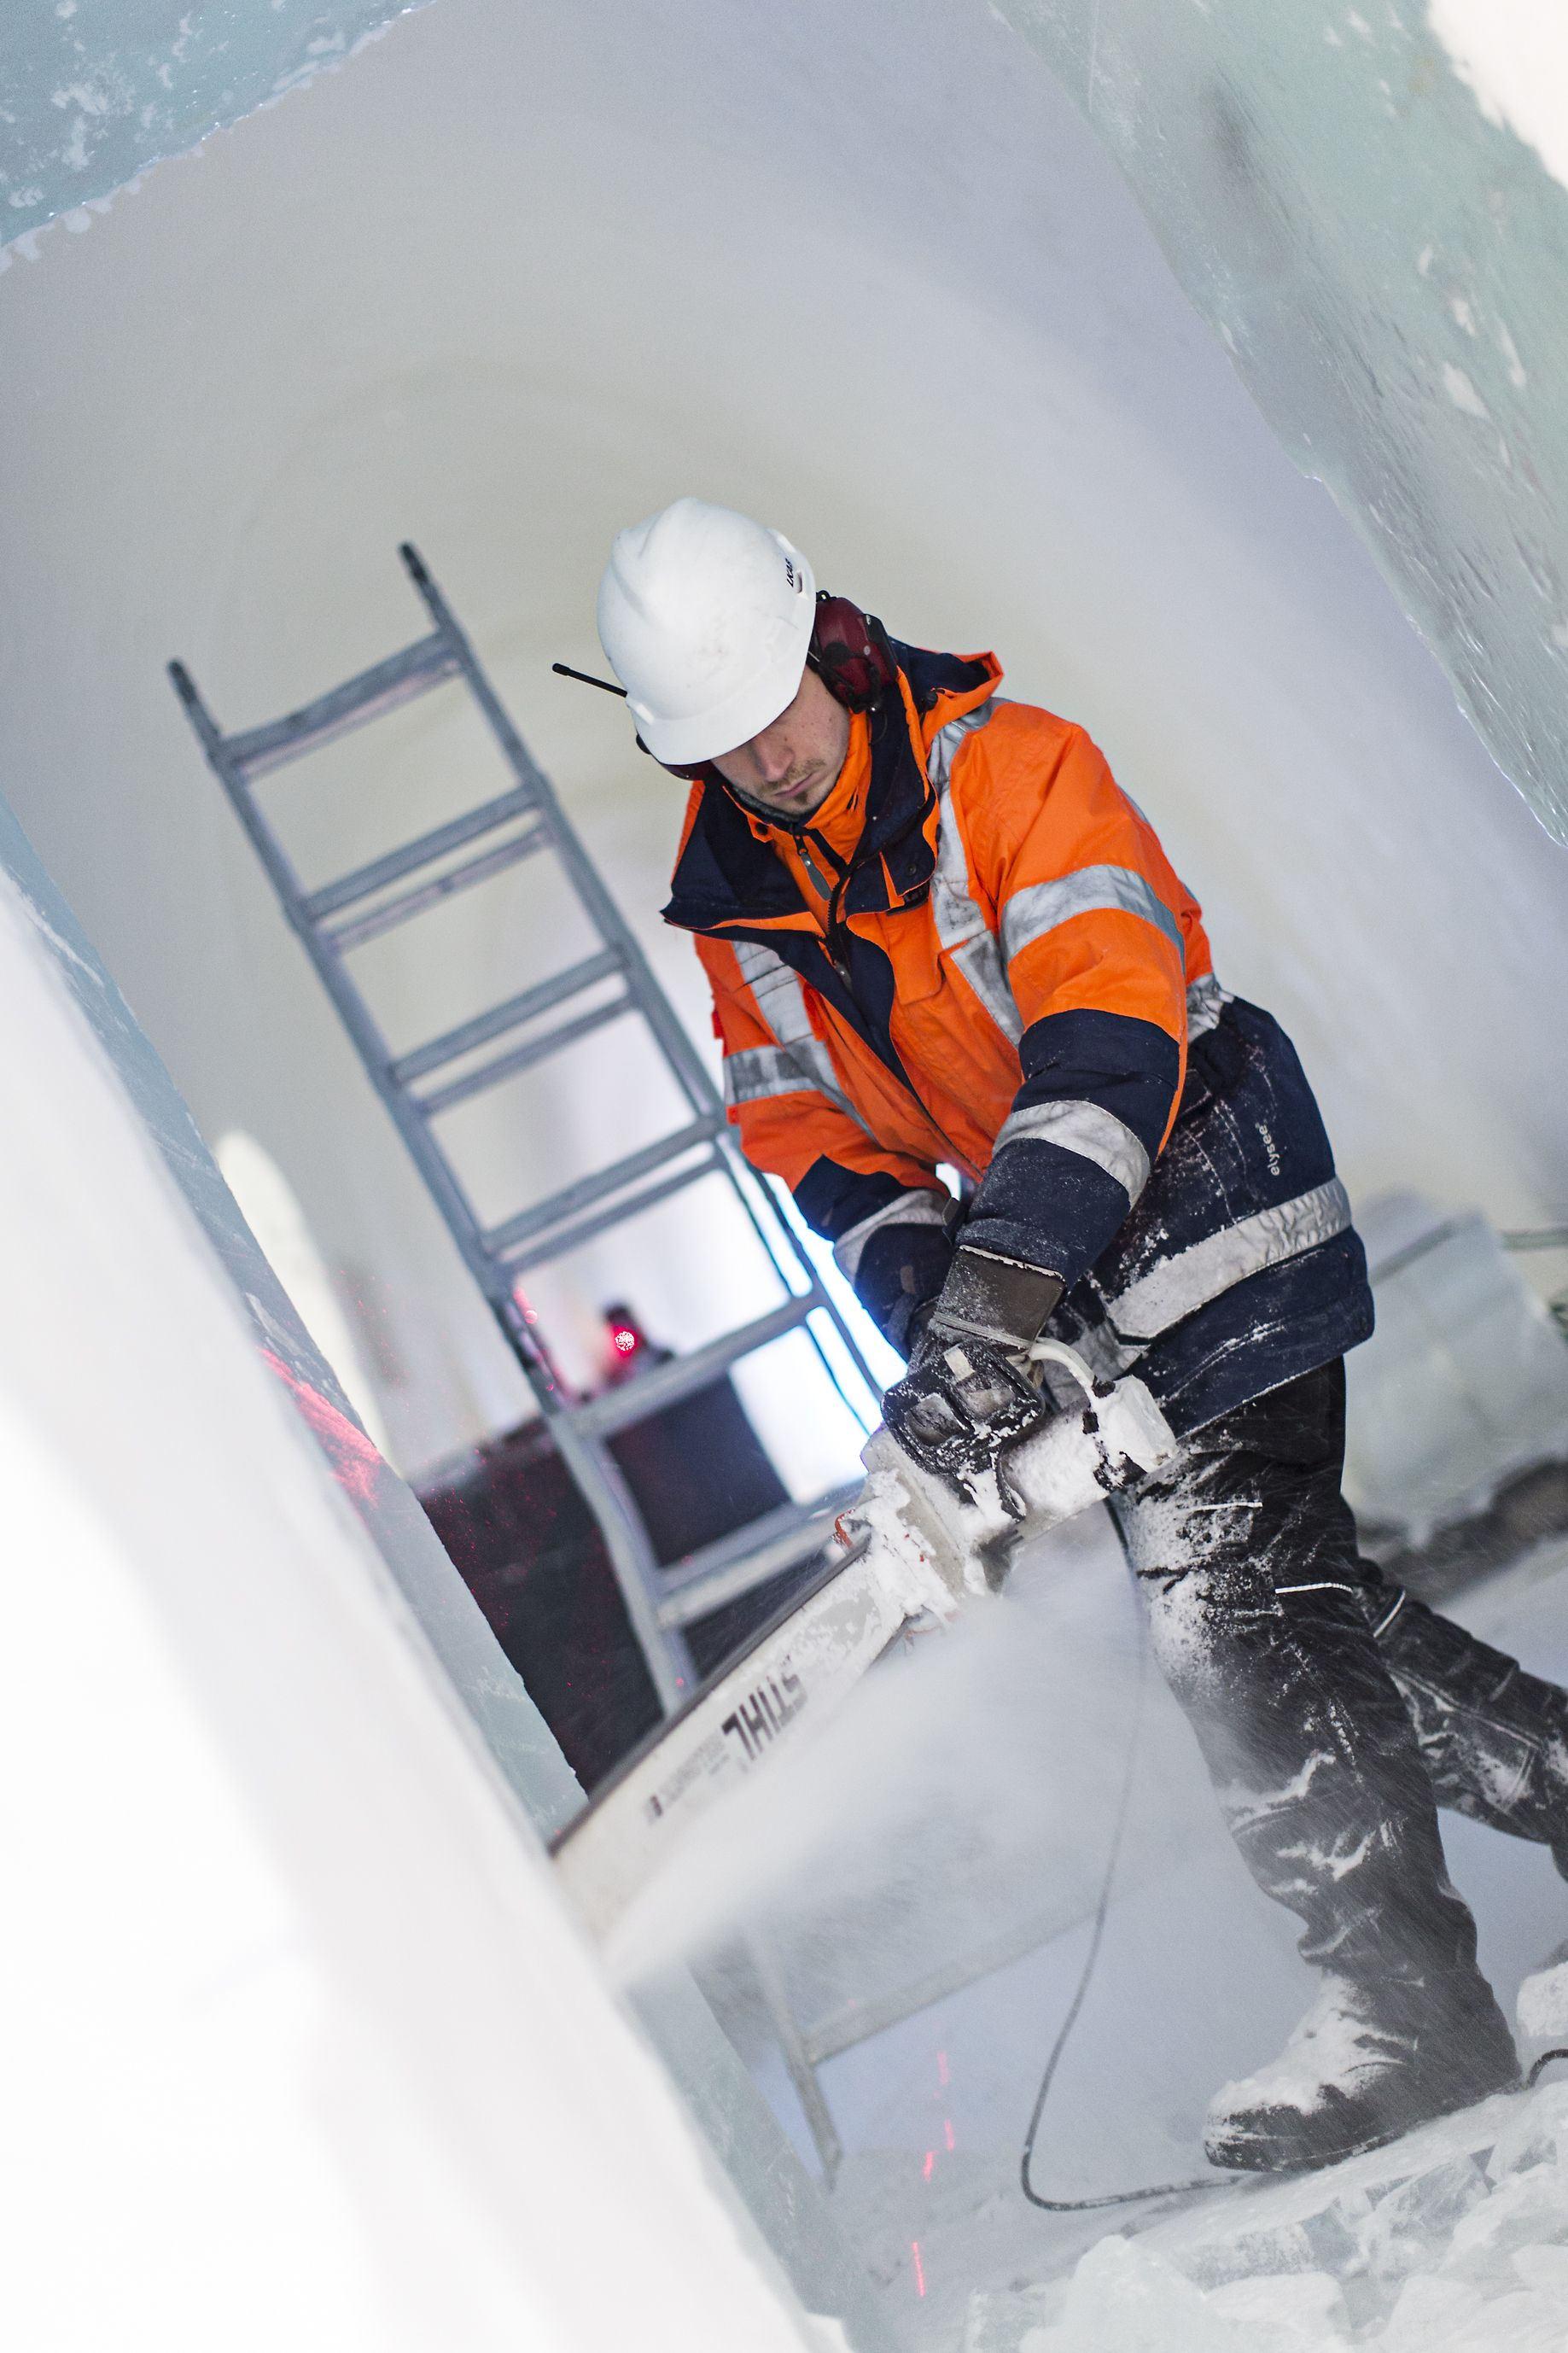 Building ICEHOTEL by Paulina Holmgren